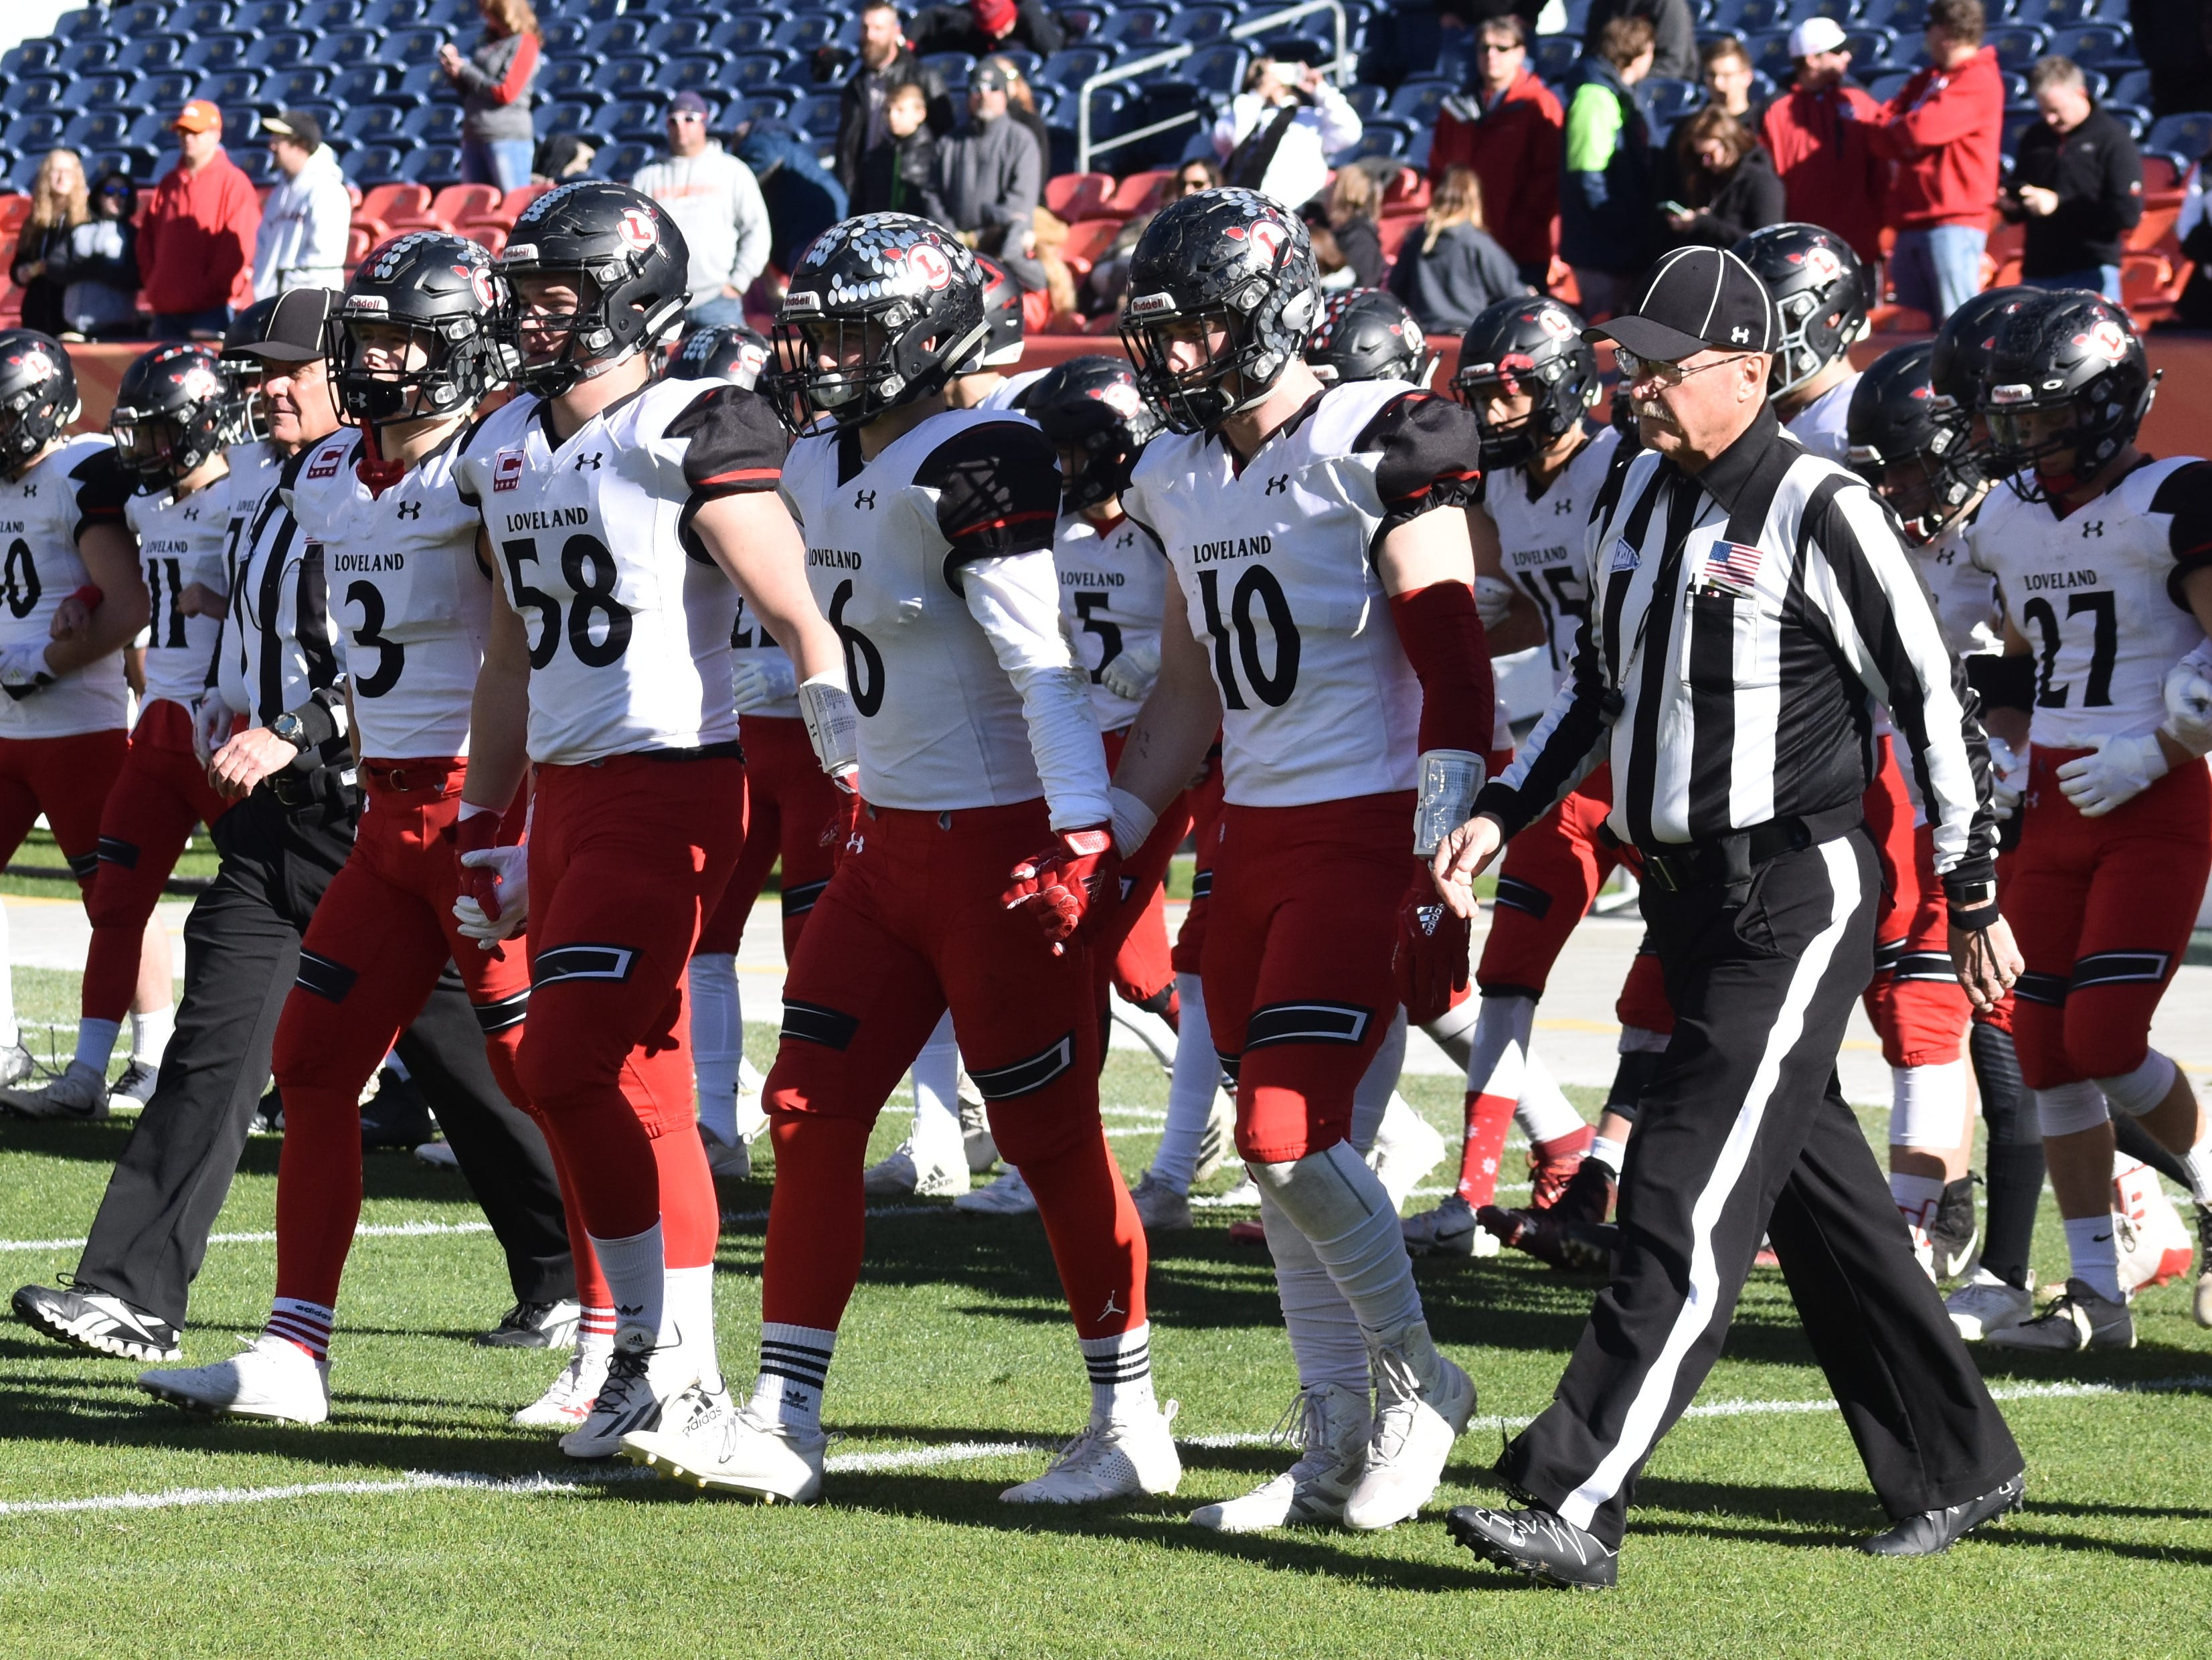 Loveland High football team captains Zach Weinmaster, Michael Deschene, Colby Mauck and Sean Boylan head toward midfield with the officials for the coin toss before Saturday's Class 4A state title game in Denver.